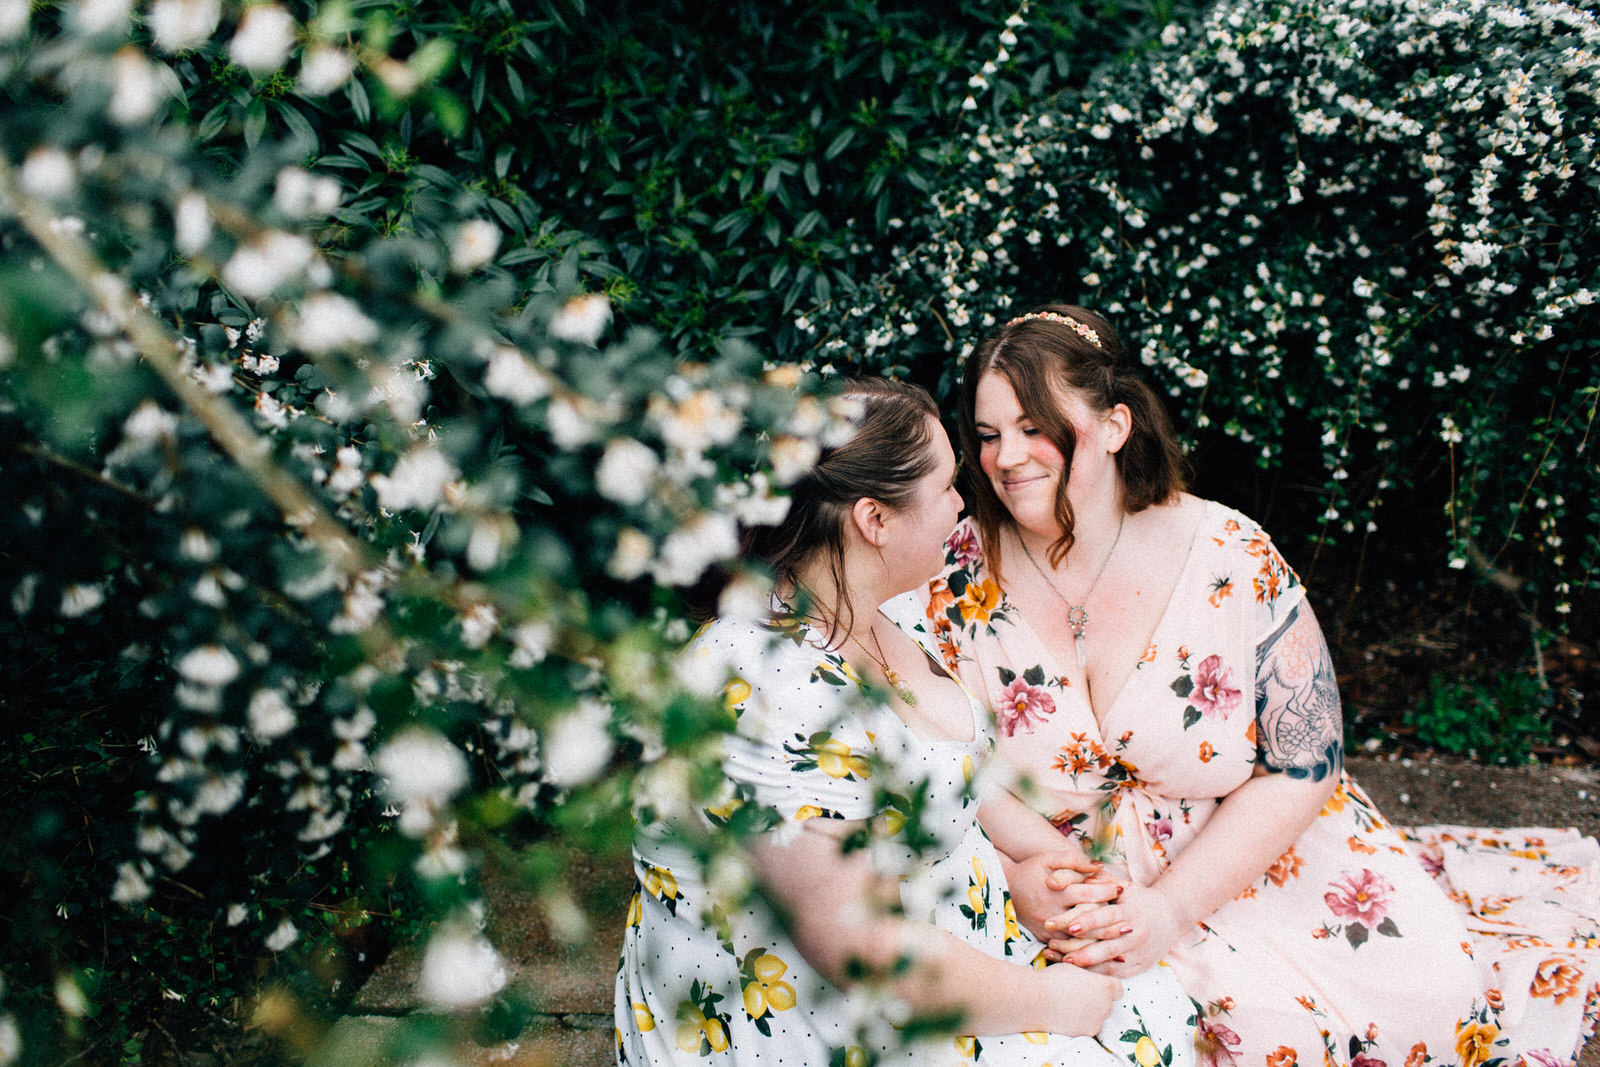 spring cherry blossom seattle engagement session couples lesbian lgbt lgbtq queer outdoor natural light tacoma portland fuck yeah weddings kendall lauren shea feminist photographer